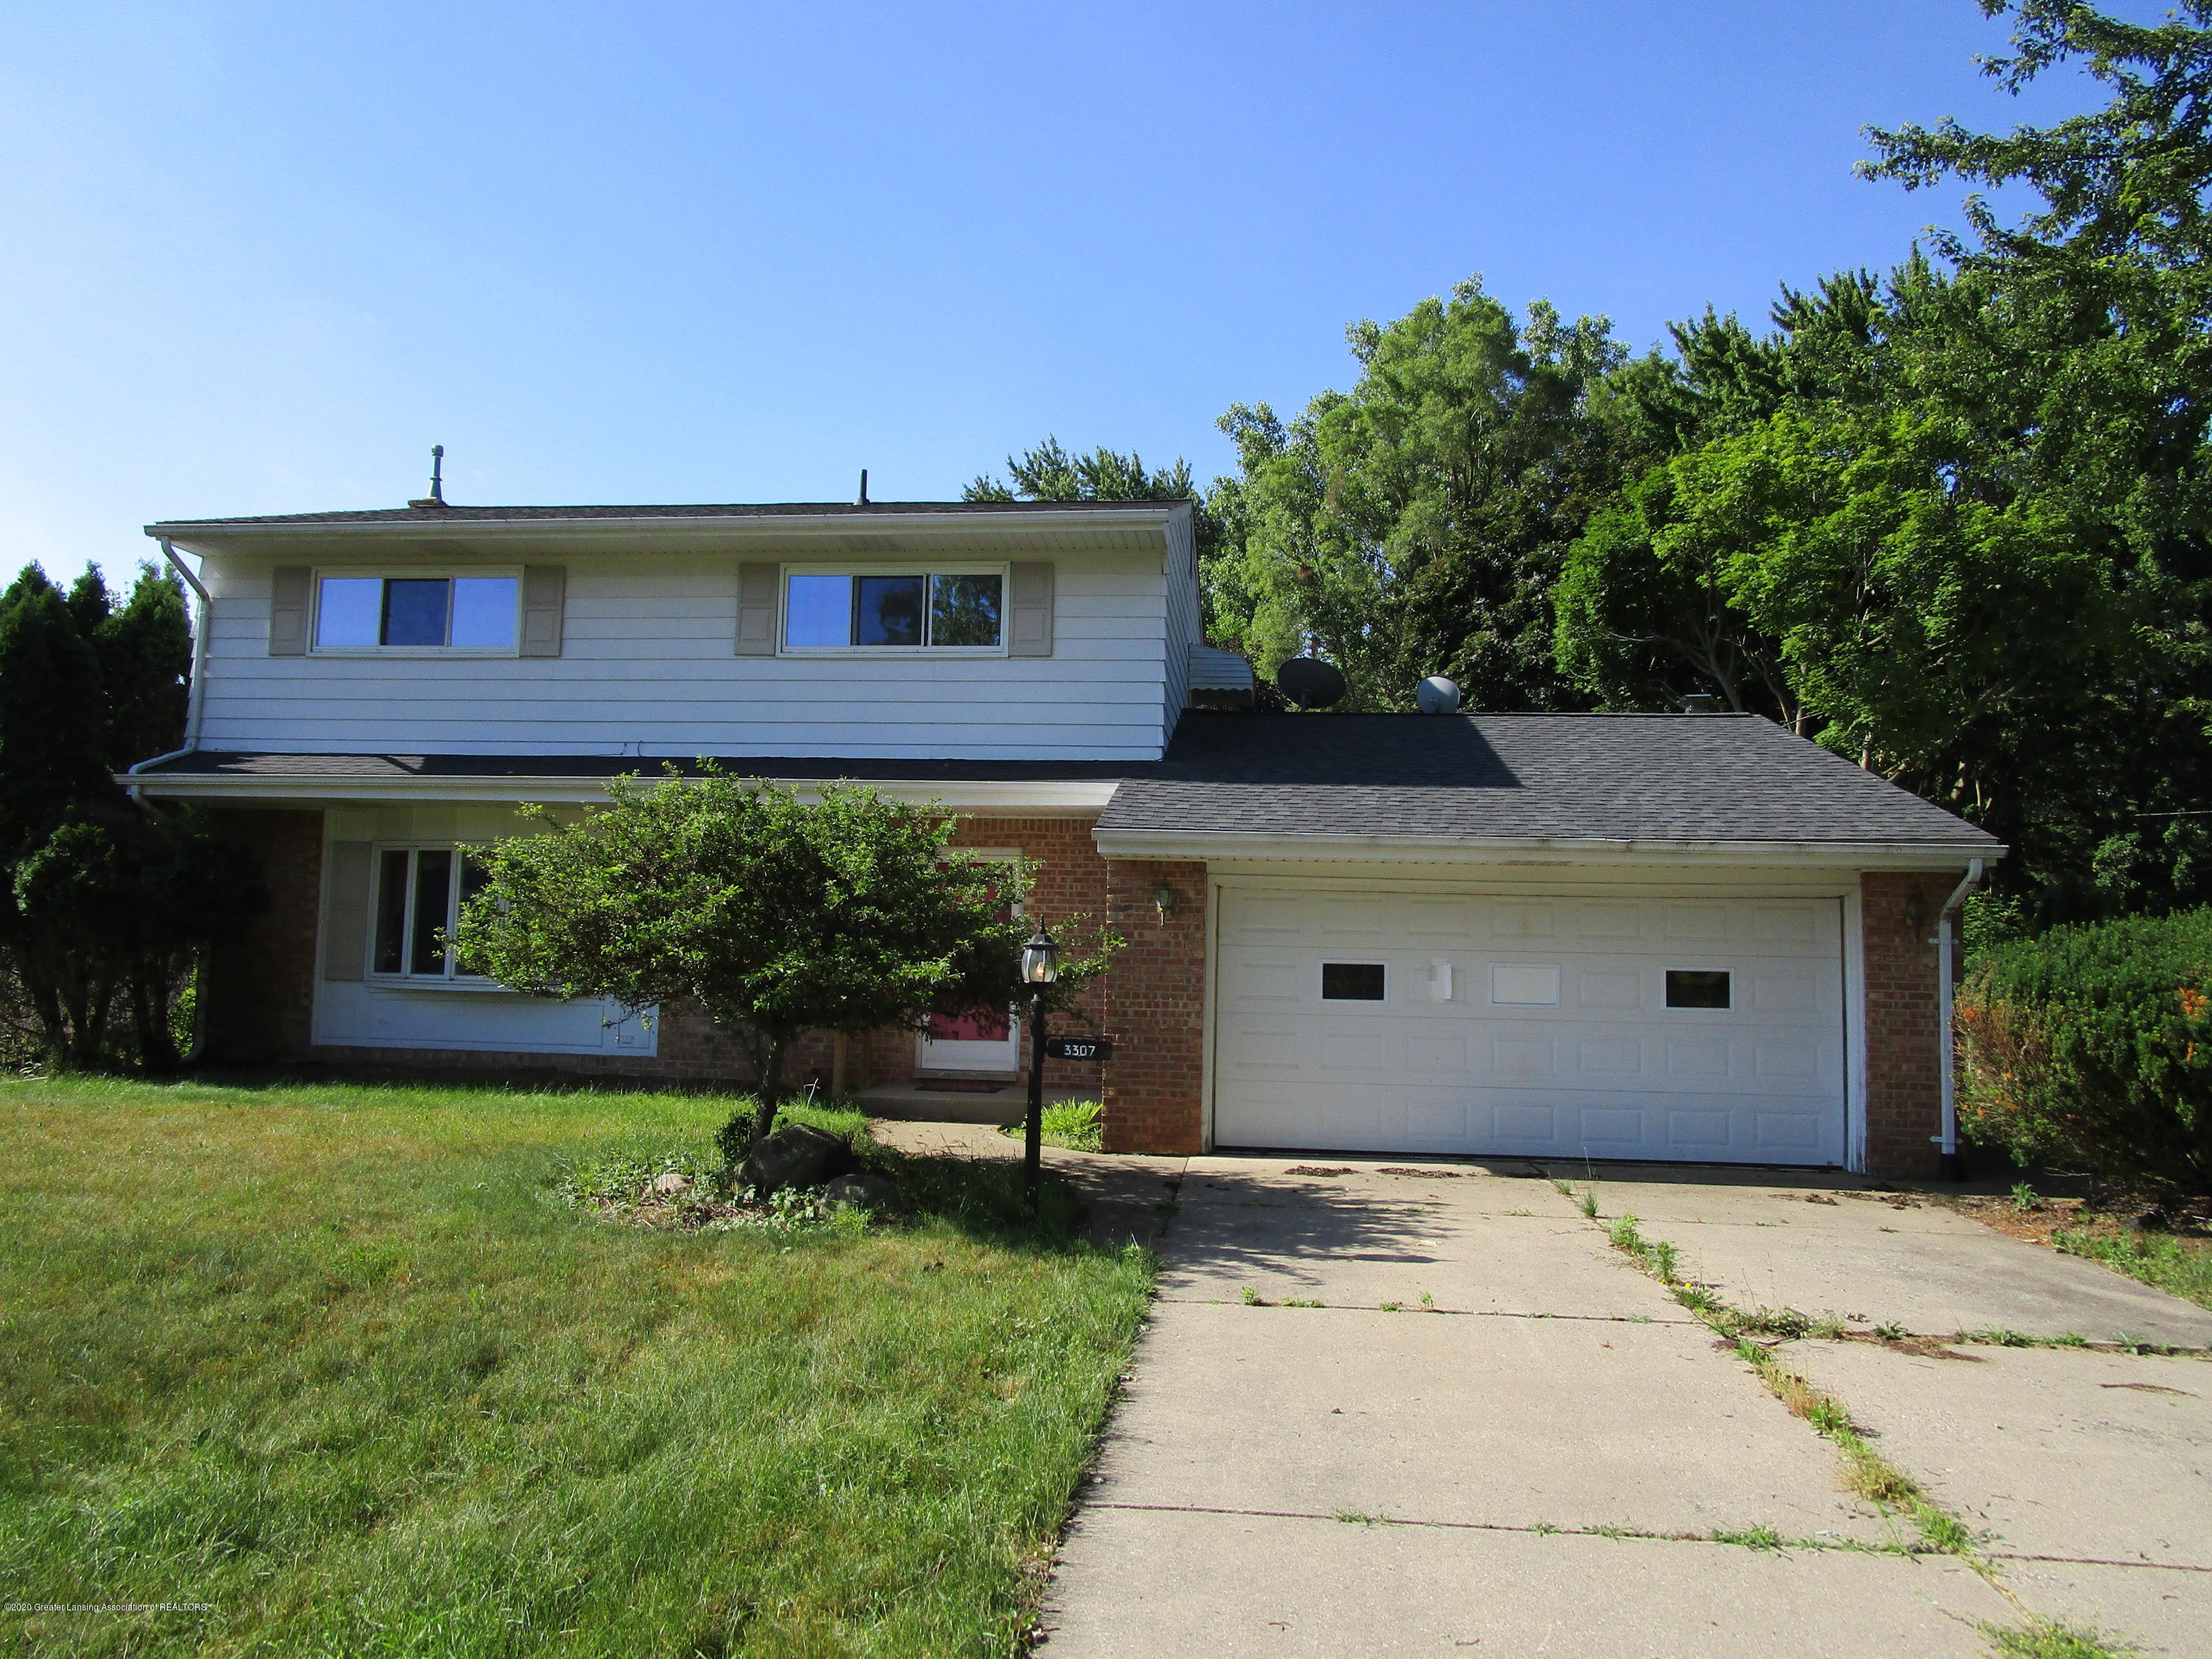 3307 McCain Rd - FRONT - 1